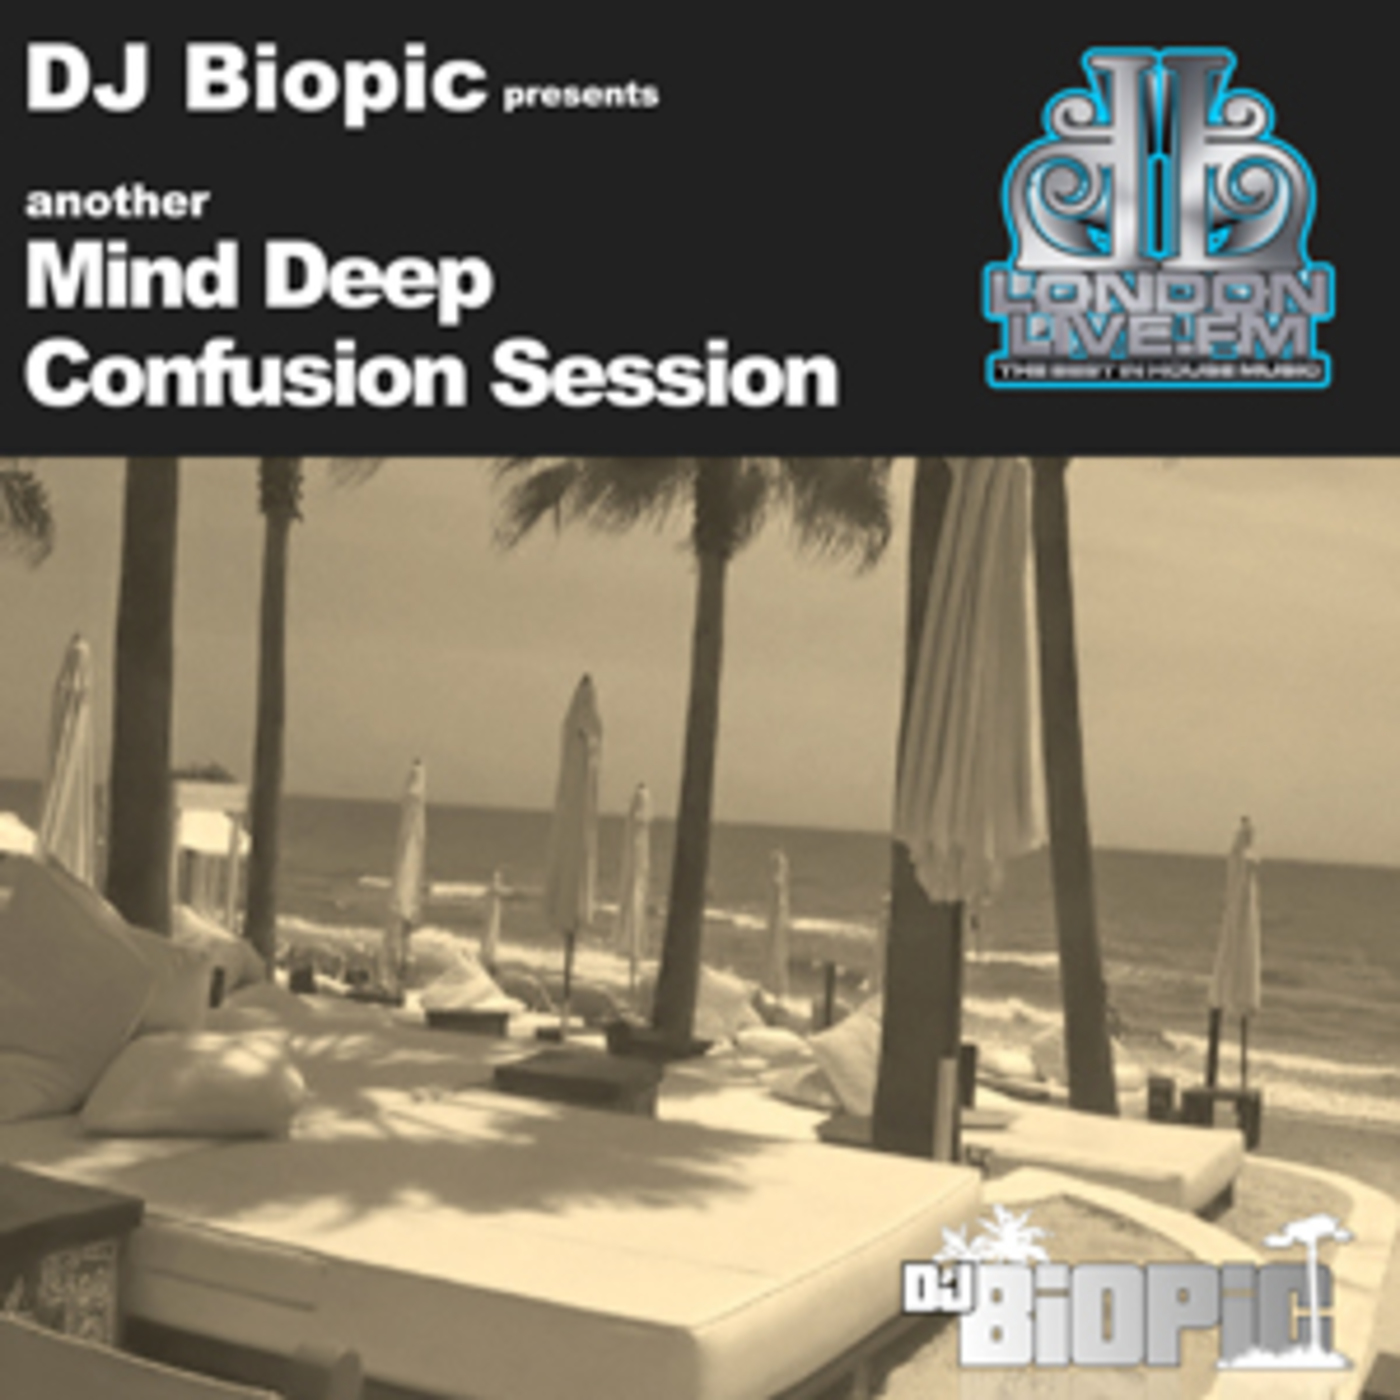 DJ Biopic's Mind Deep Confusion Podcasts